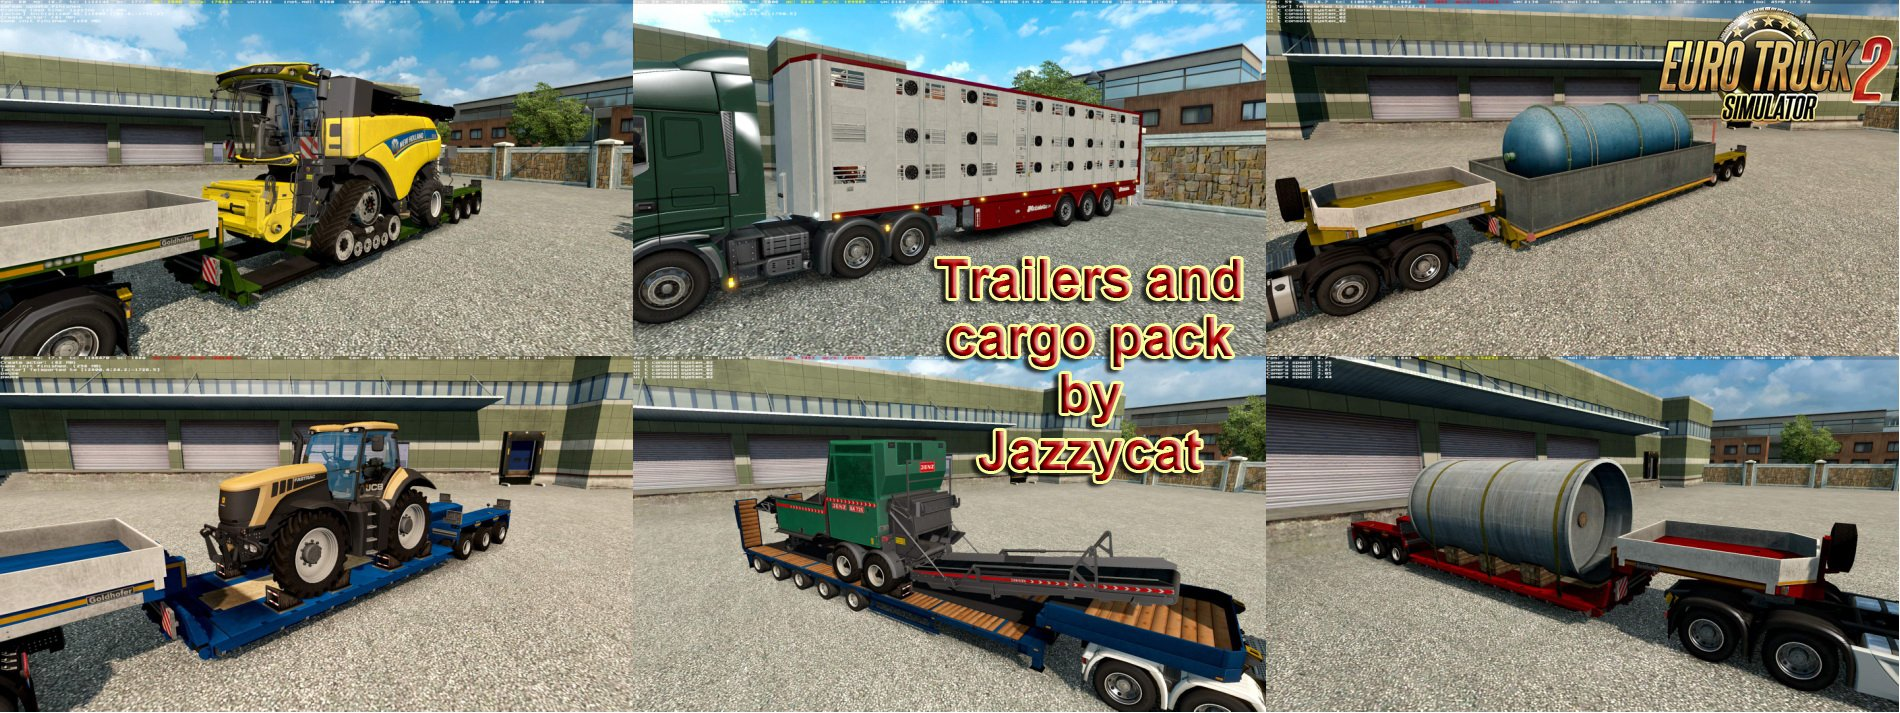 Trailers and Cargo Pack v4.4.1 by Jazzycat [1.26.x]